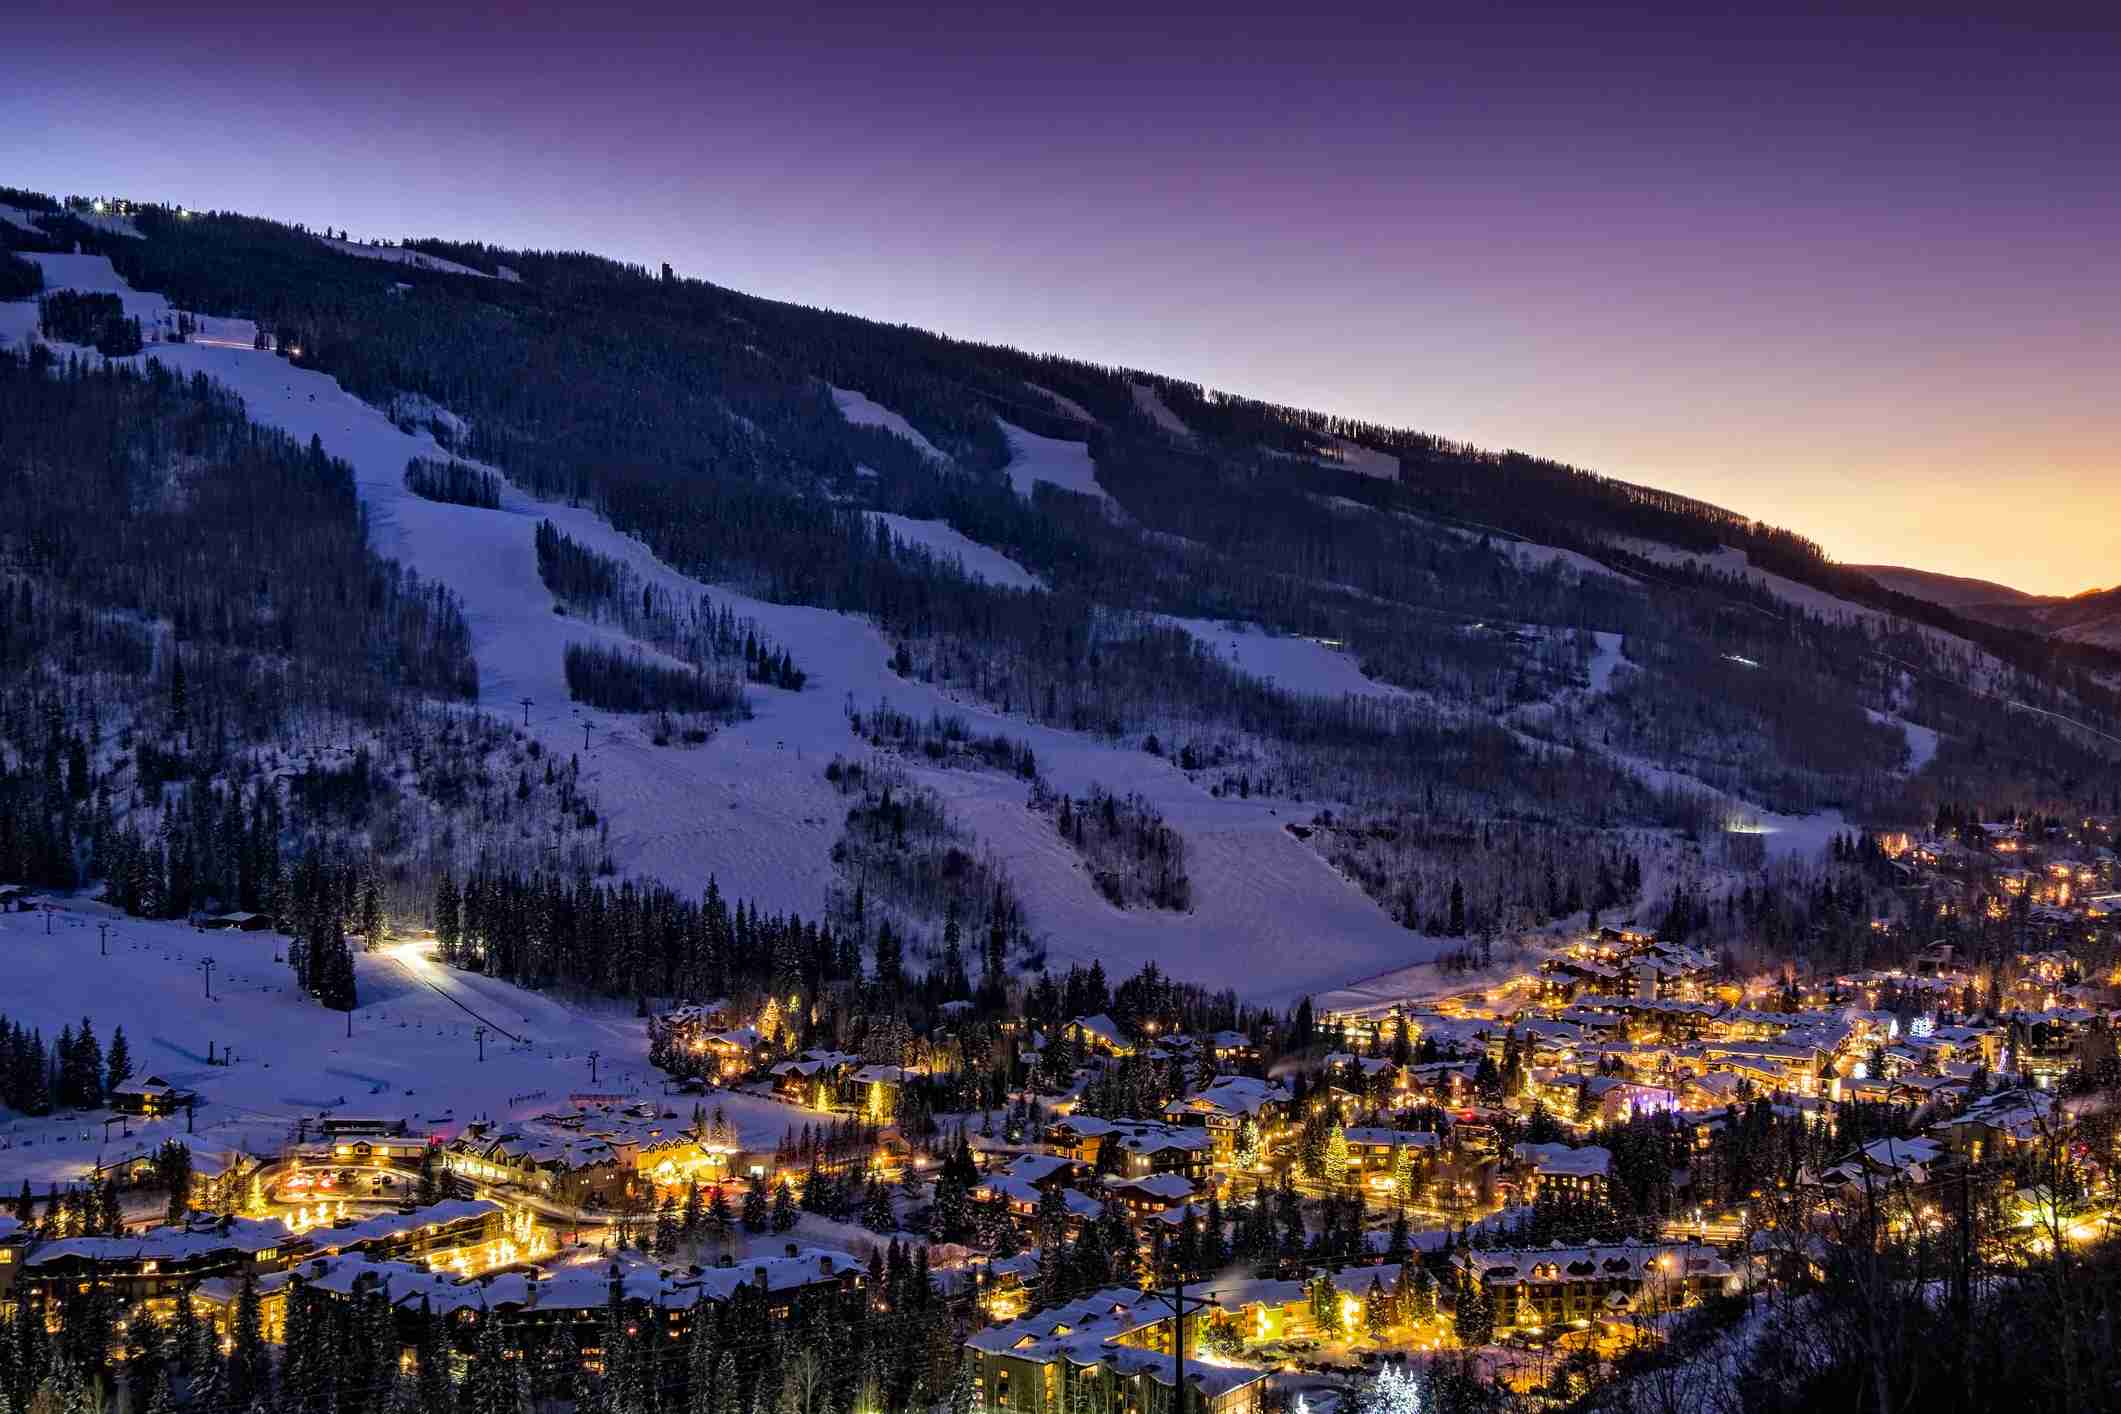 Vail Village (Photo courtesy of Adventure_Photo/Getty Images)